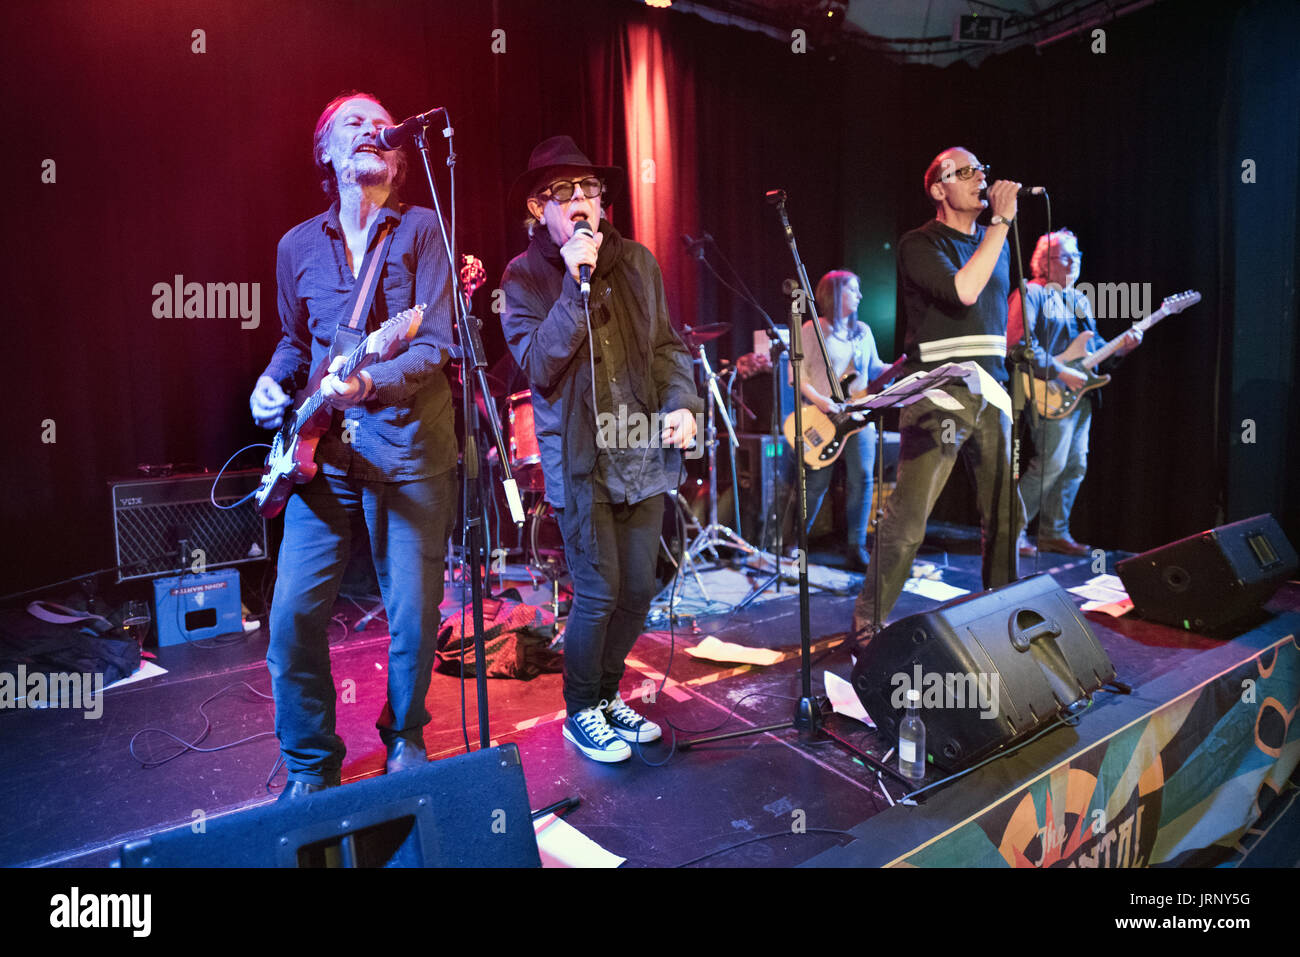 Preston, UK. 05th Aug, 2017. The Mekons play a gig at The Continental, Preston, UK. The original 1970s line-up of the band have reformed for a number of UK concerts, playing some of their punk classic like 'Dan Dare' and 'Where were you'. - Stock Image